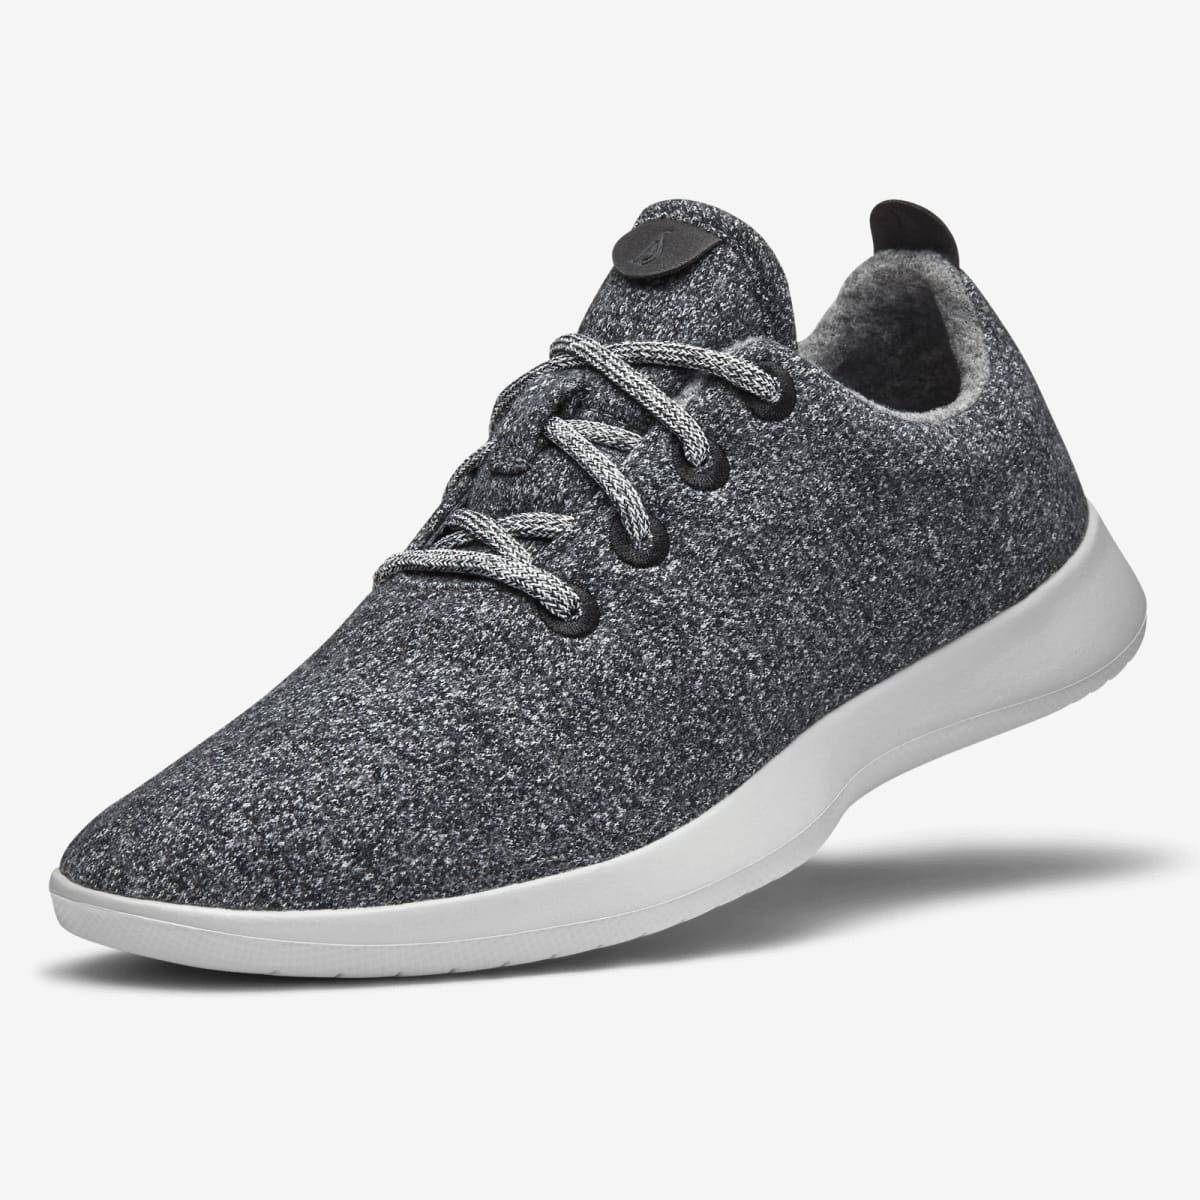 Allbirds Wool Runners, best shoes for standing